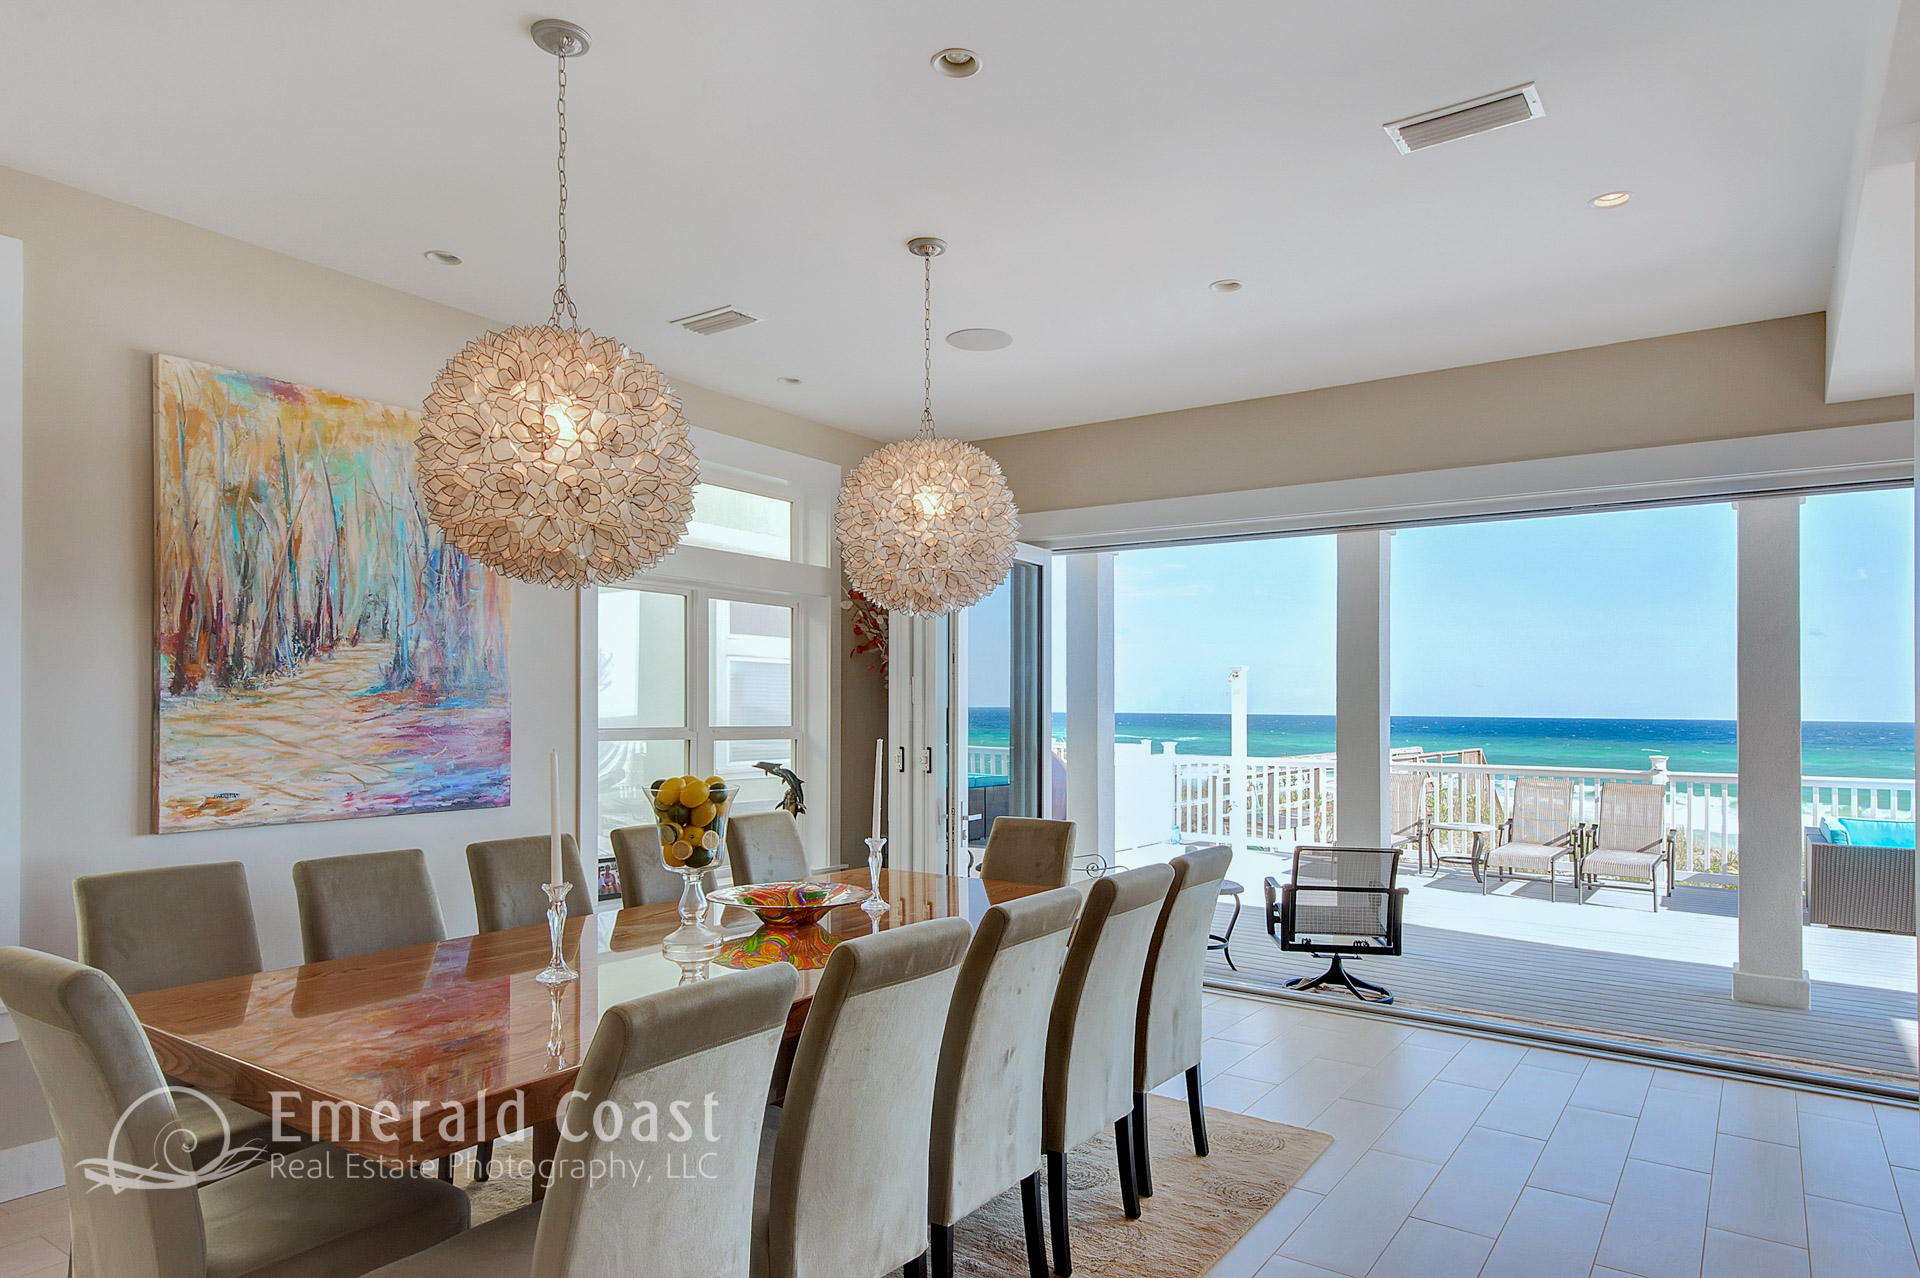 formal dining room with view of Gulf of Mexico